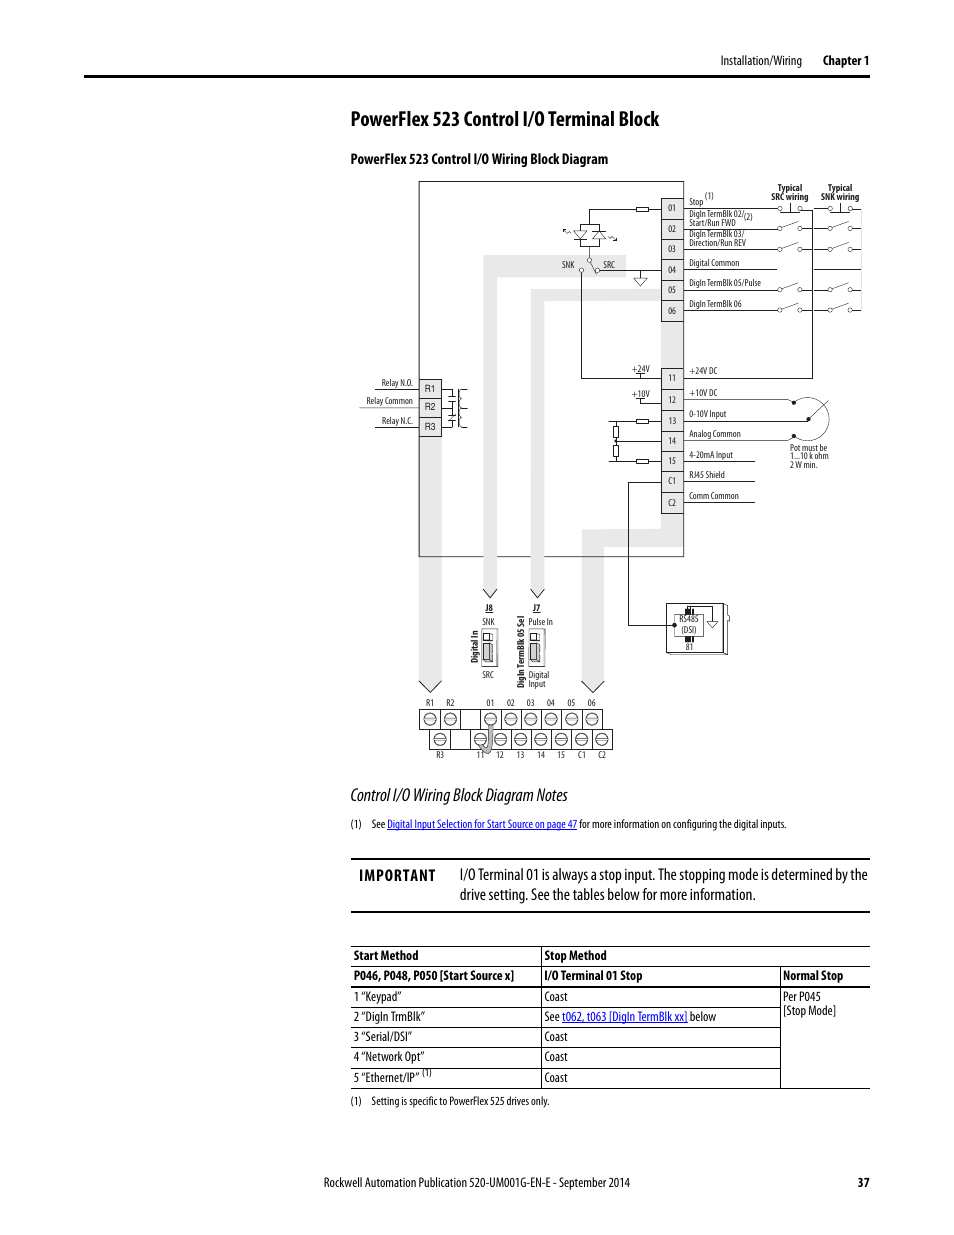 rockwell automation 25b powerflex 520 series adjustable frequency ac drive user manual page37 powerflex 523 control i o terminal block, powerflex 523 control i powerflex 523 wiring diagram at mifinder.co